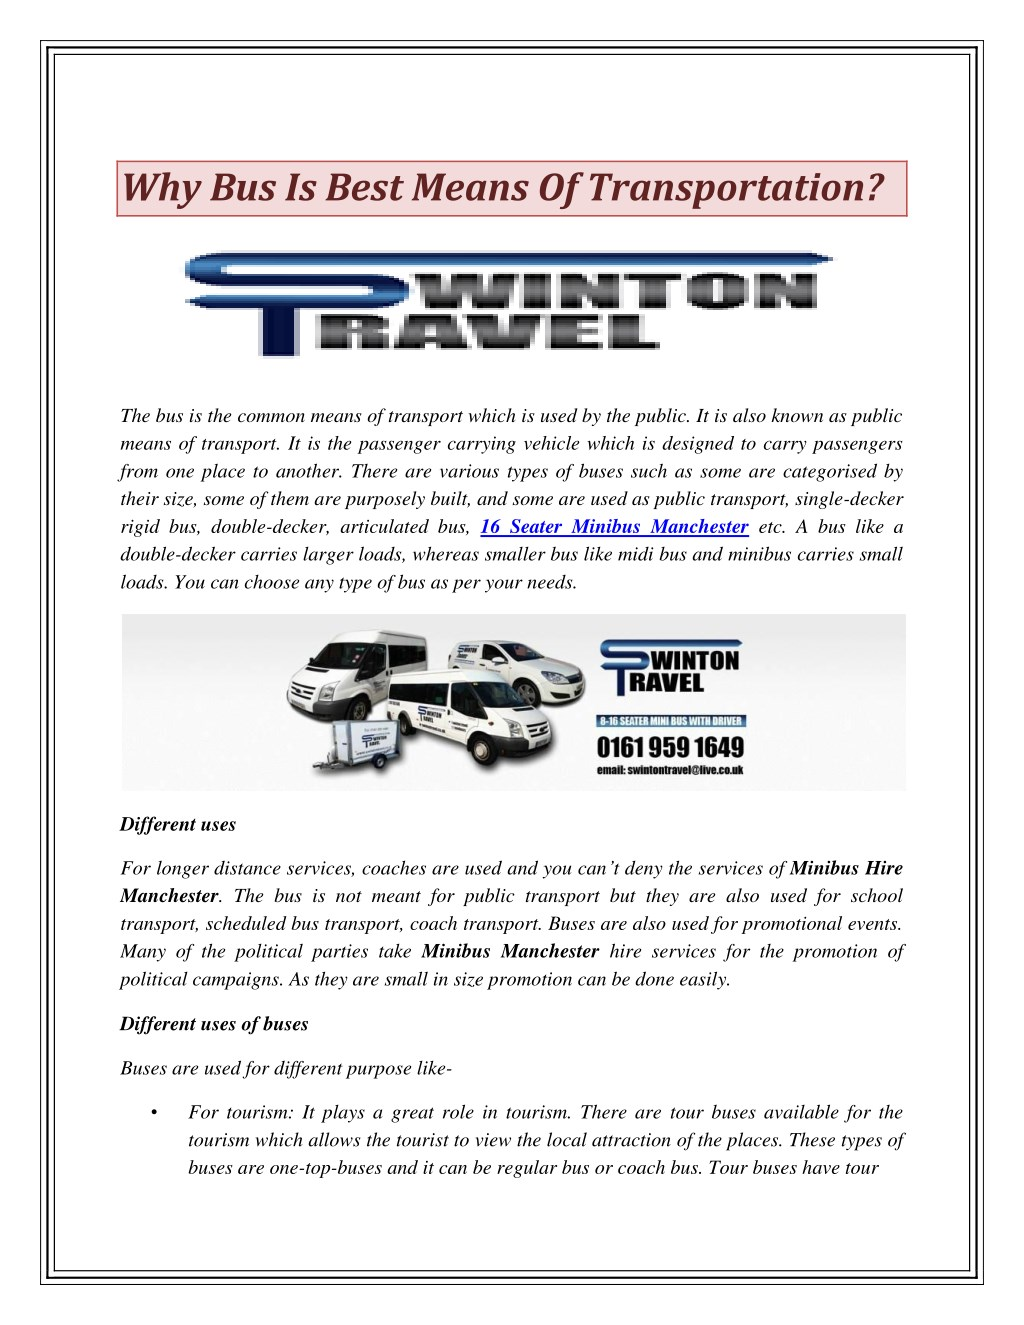 Ppt Why Bus Is Best Means Of Transportation Powerpoint Presentation Free Download Id 7886049